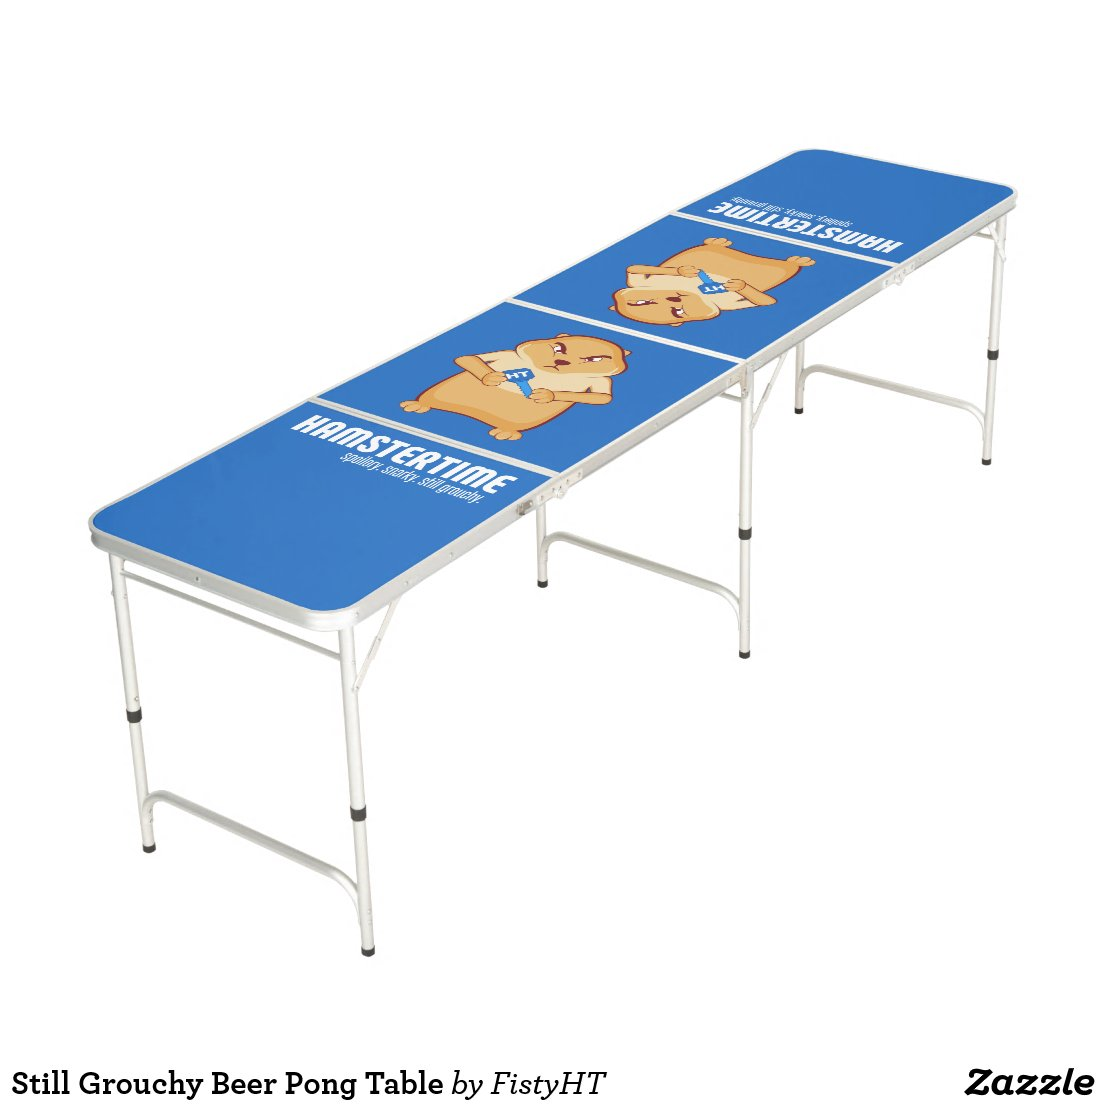 Still Grouchy Beer Pong Table